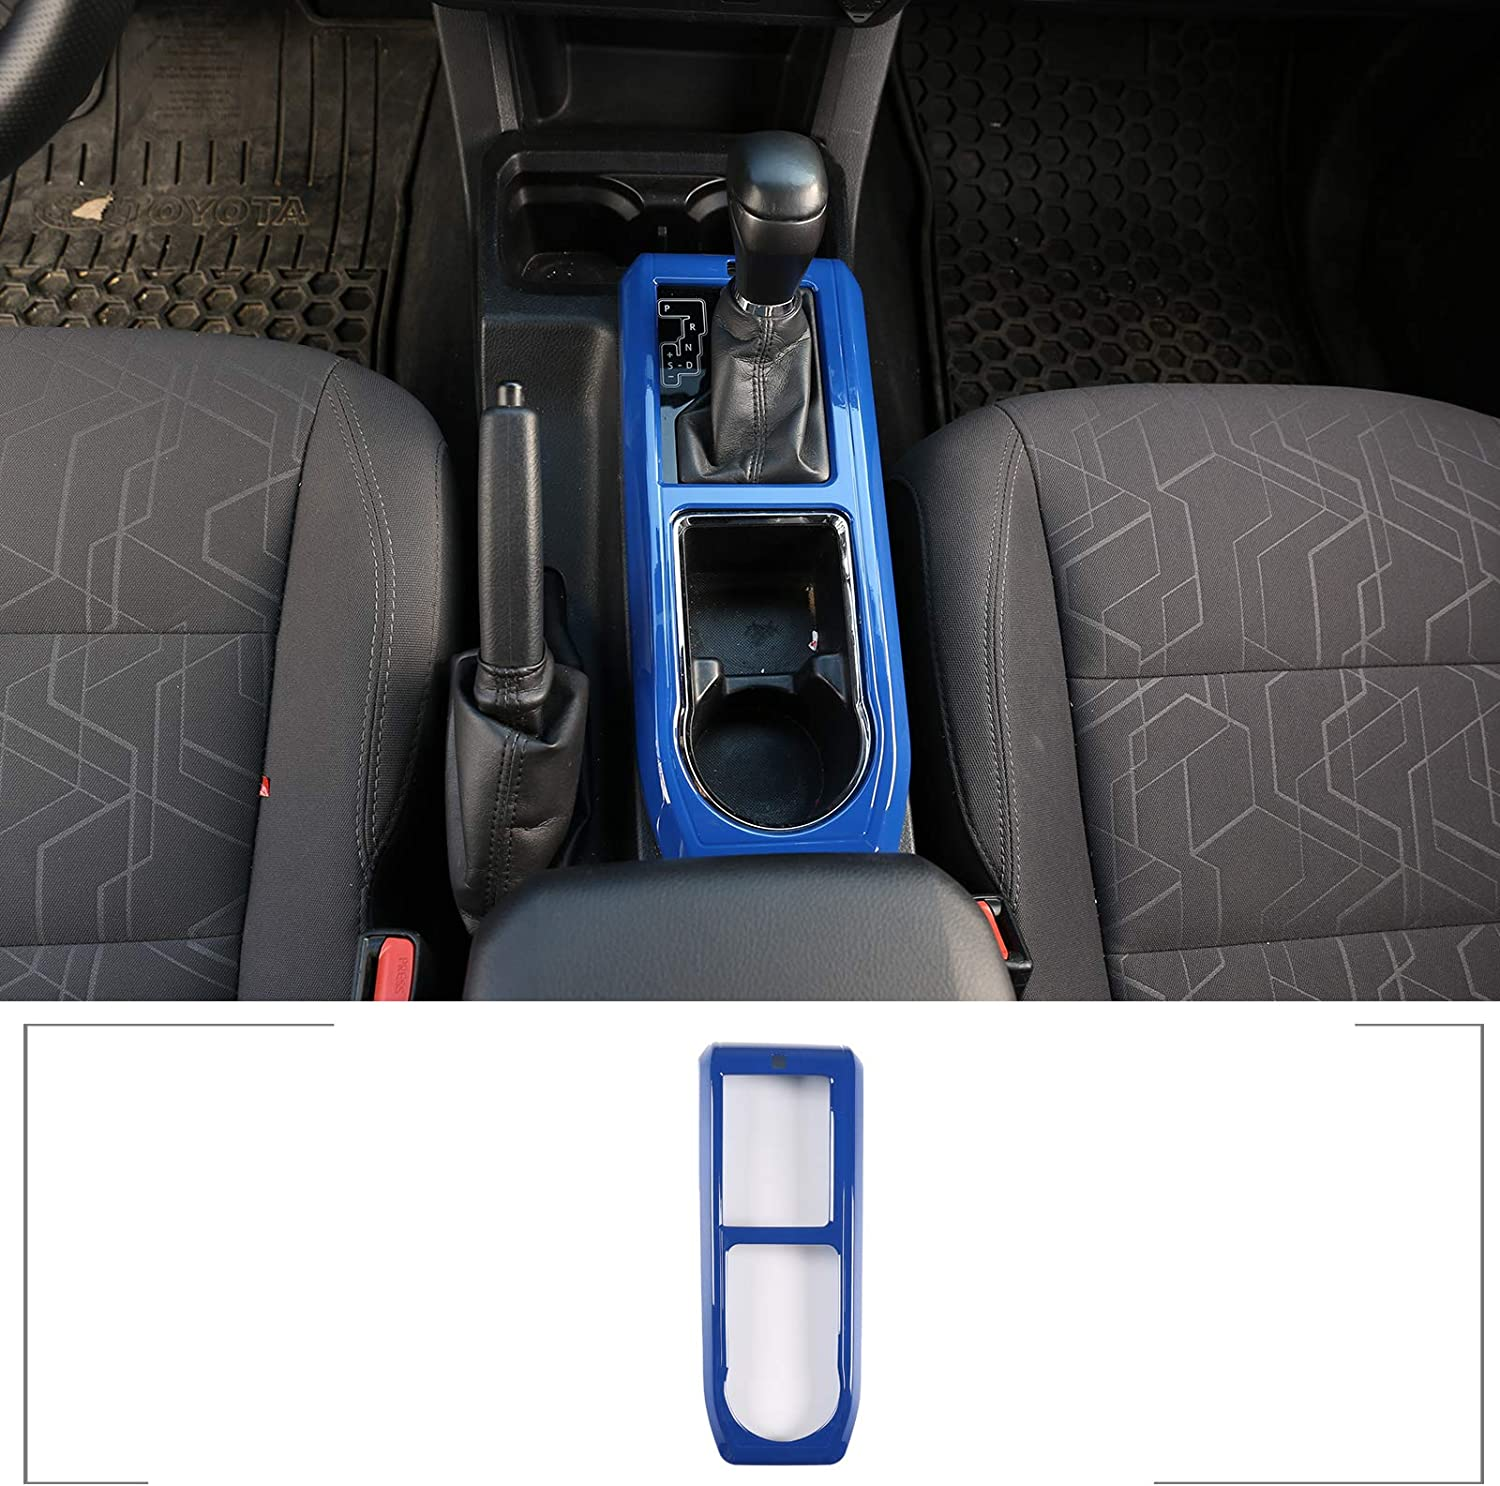 Choice LLKUANG Center Console Gear Panle Phoenix Mall Frame Cover for Toyota Trim Ta